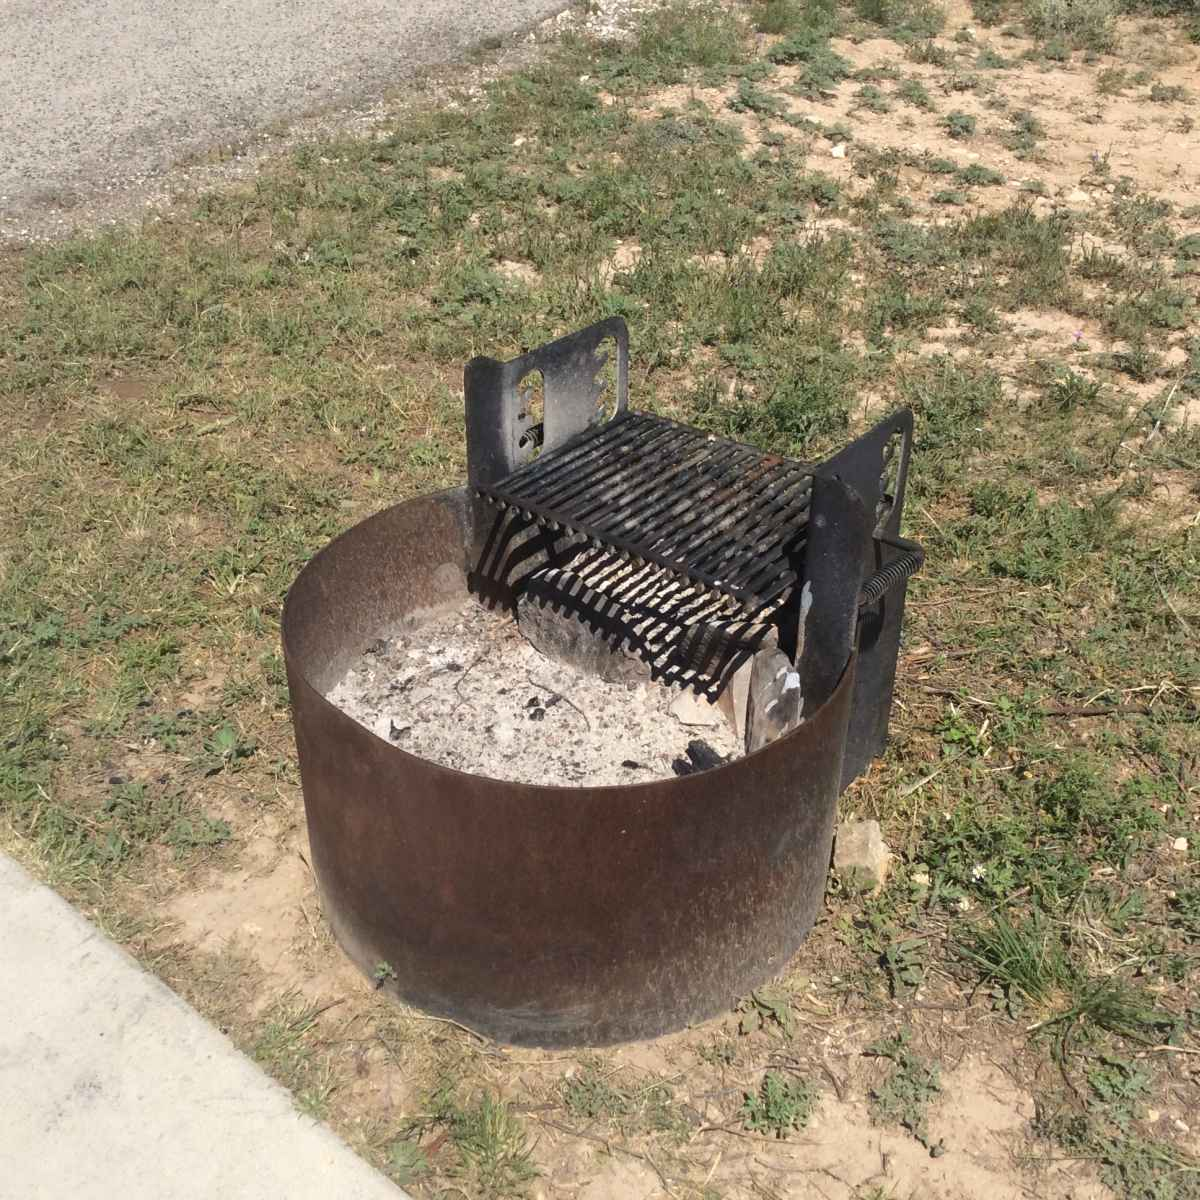 The fire ring at Campsite 44 is designed to be usable by people in wheelchairs.